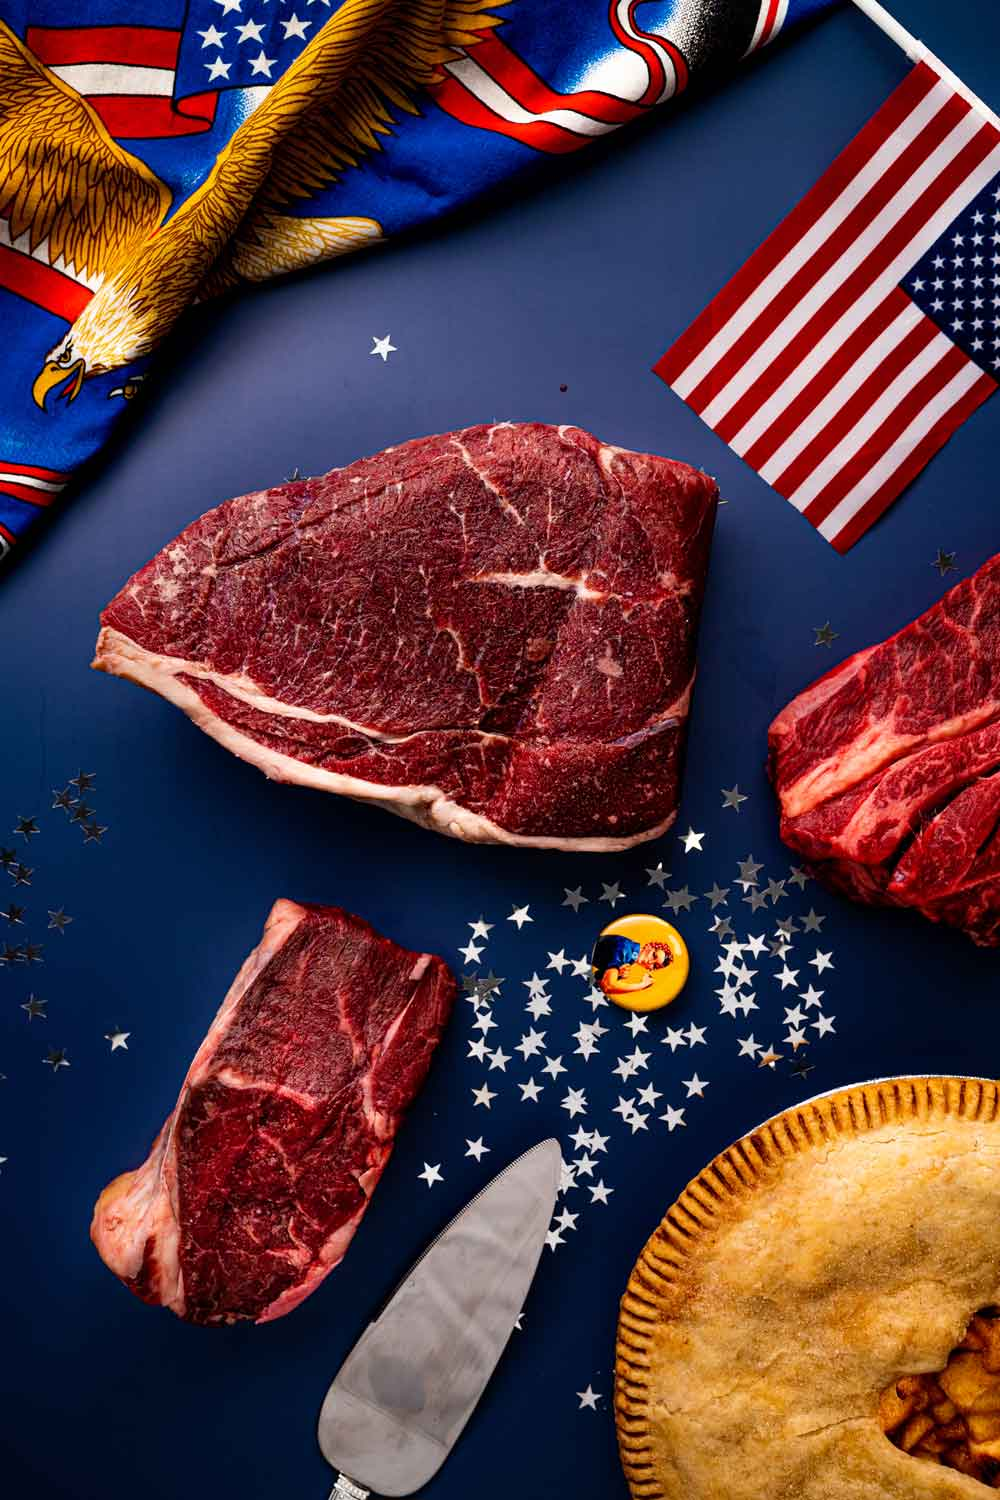 Patriotic Potluck - Butter Meat Co.